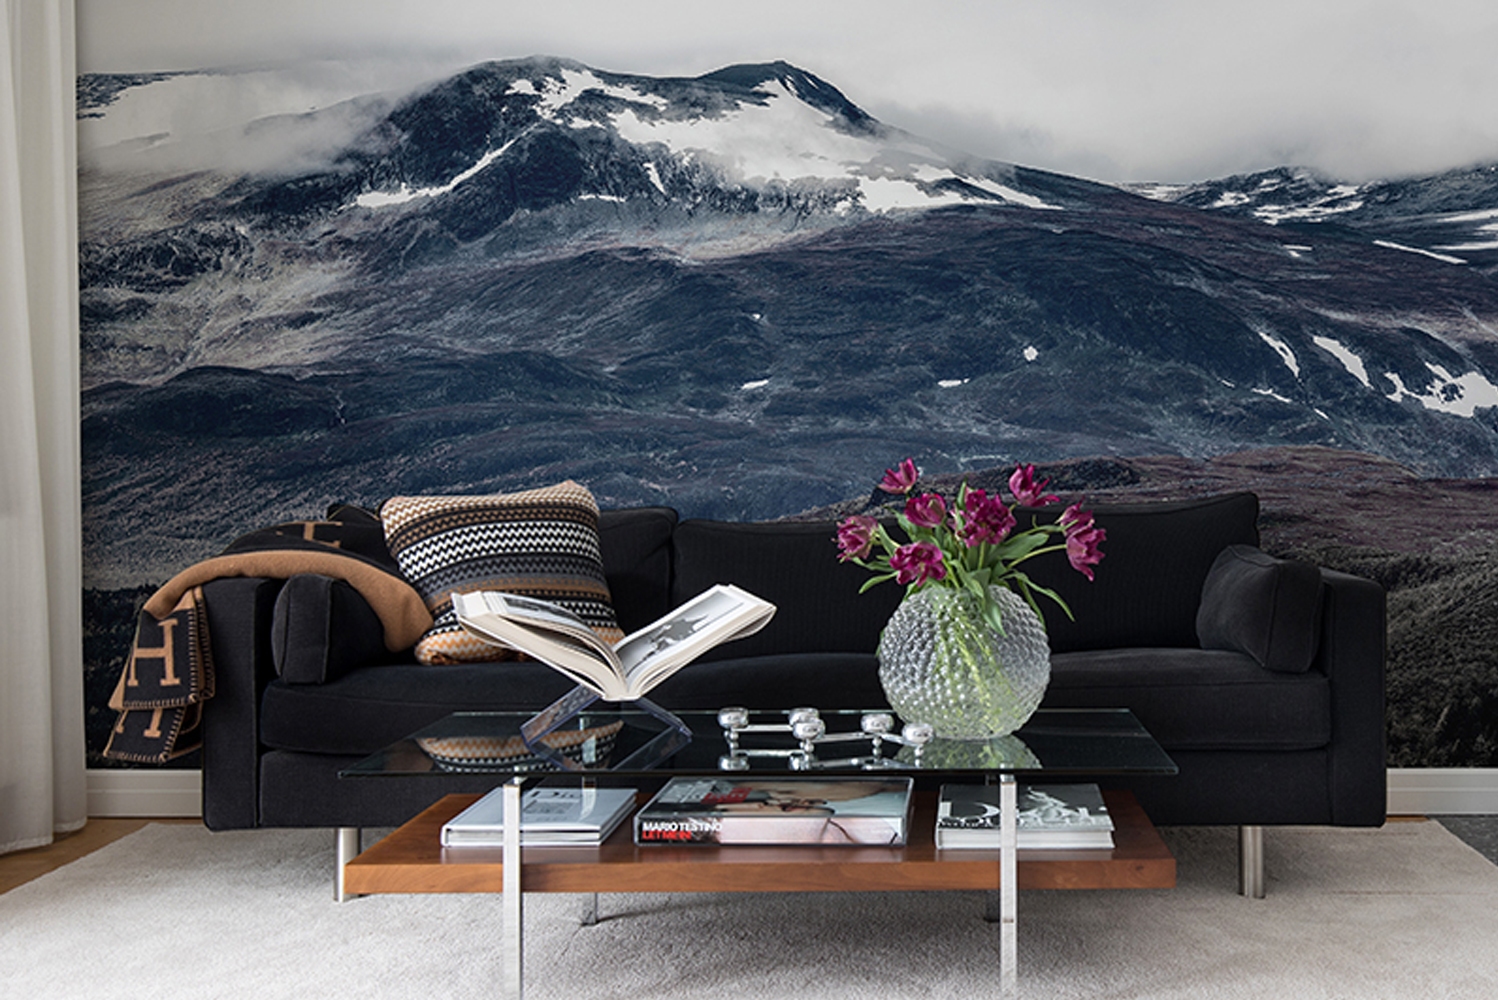 Rebel Walls launched a new wallpaper collection, Scandinavia.